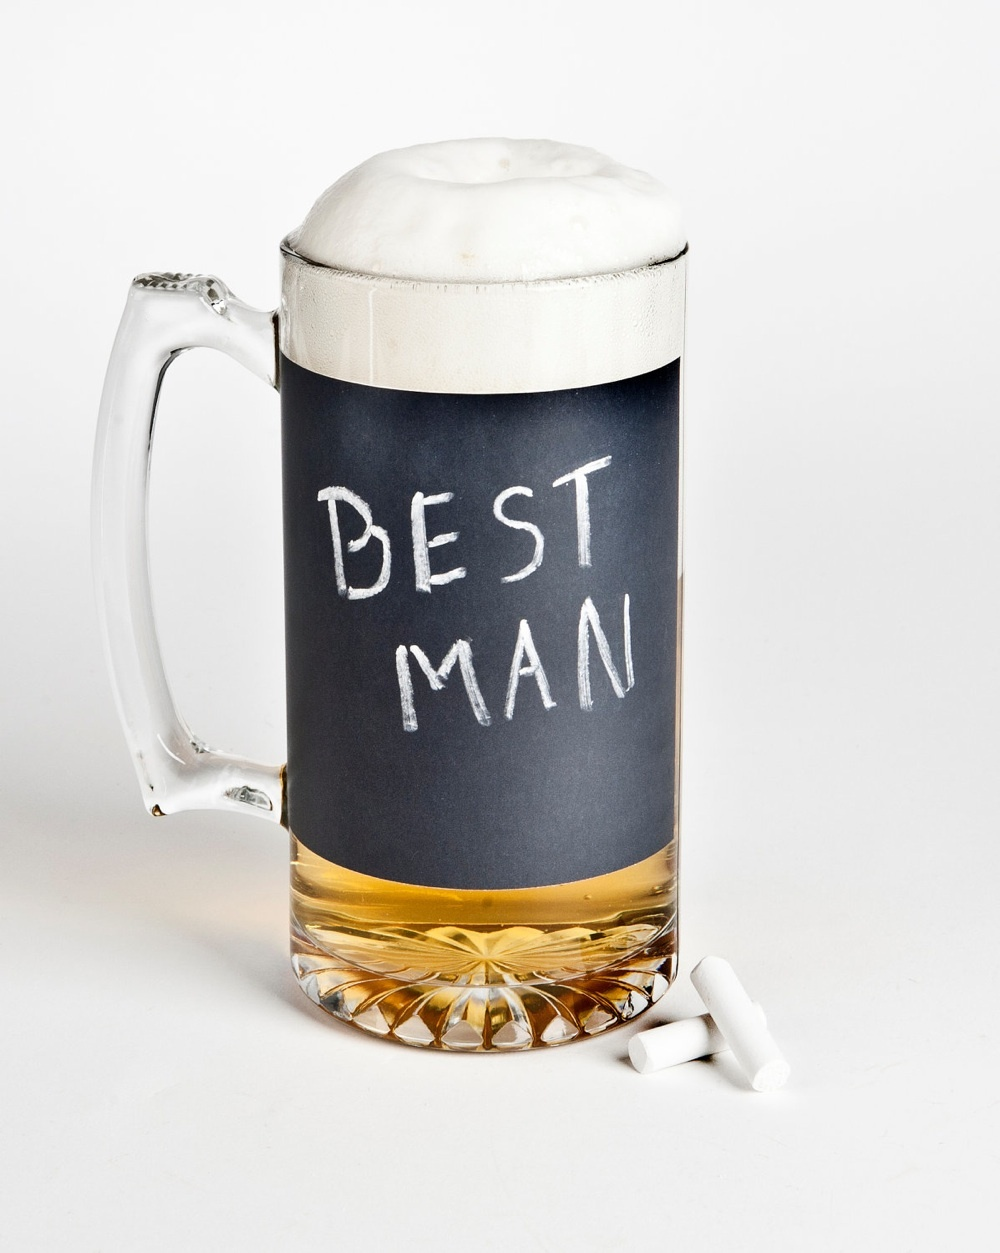 Best-man-wedding-gifts-beer-mug-chalkboard.full